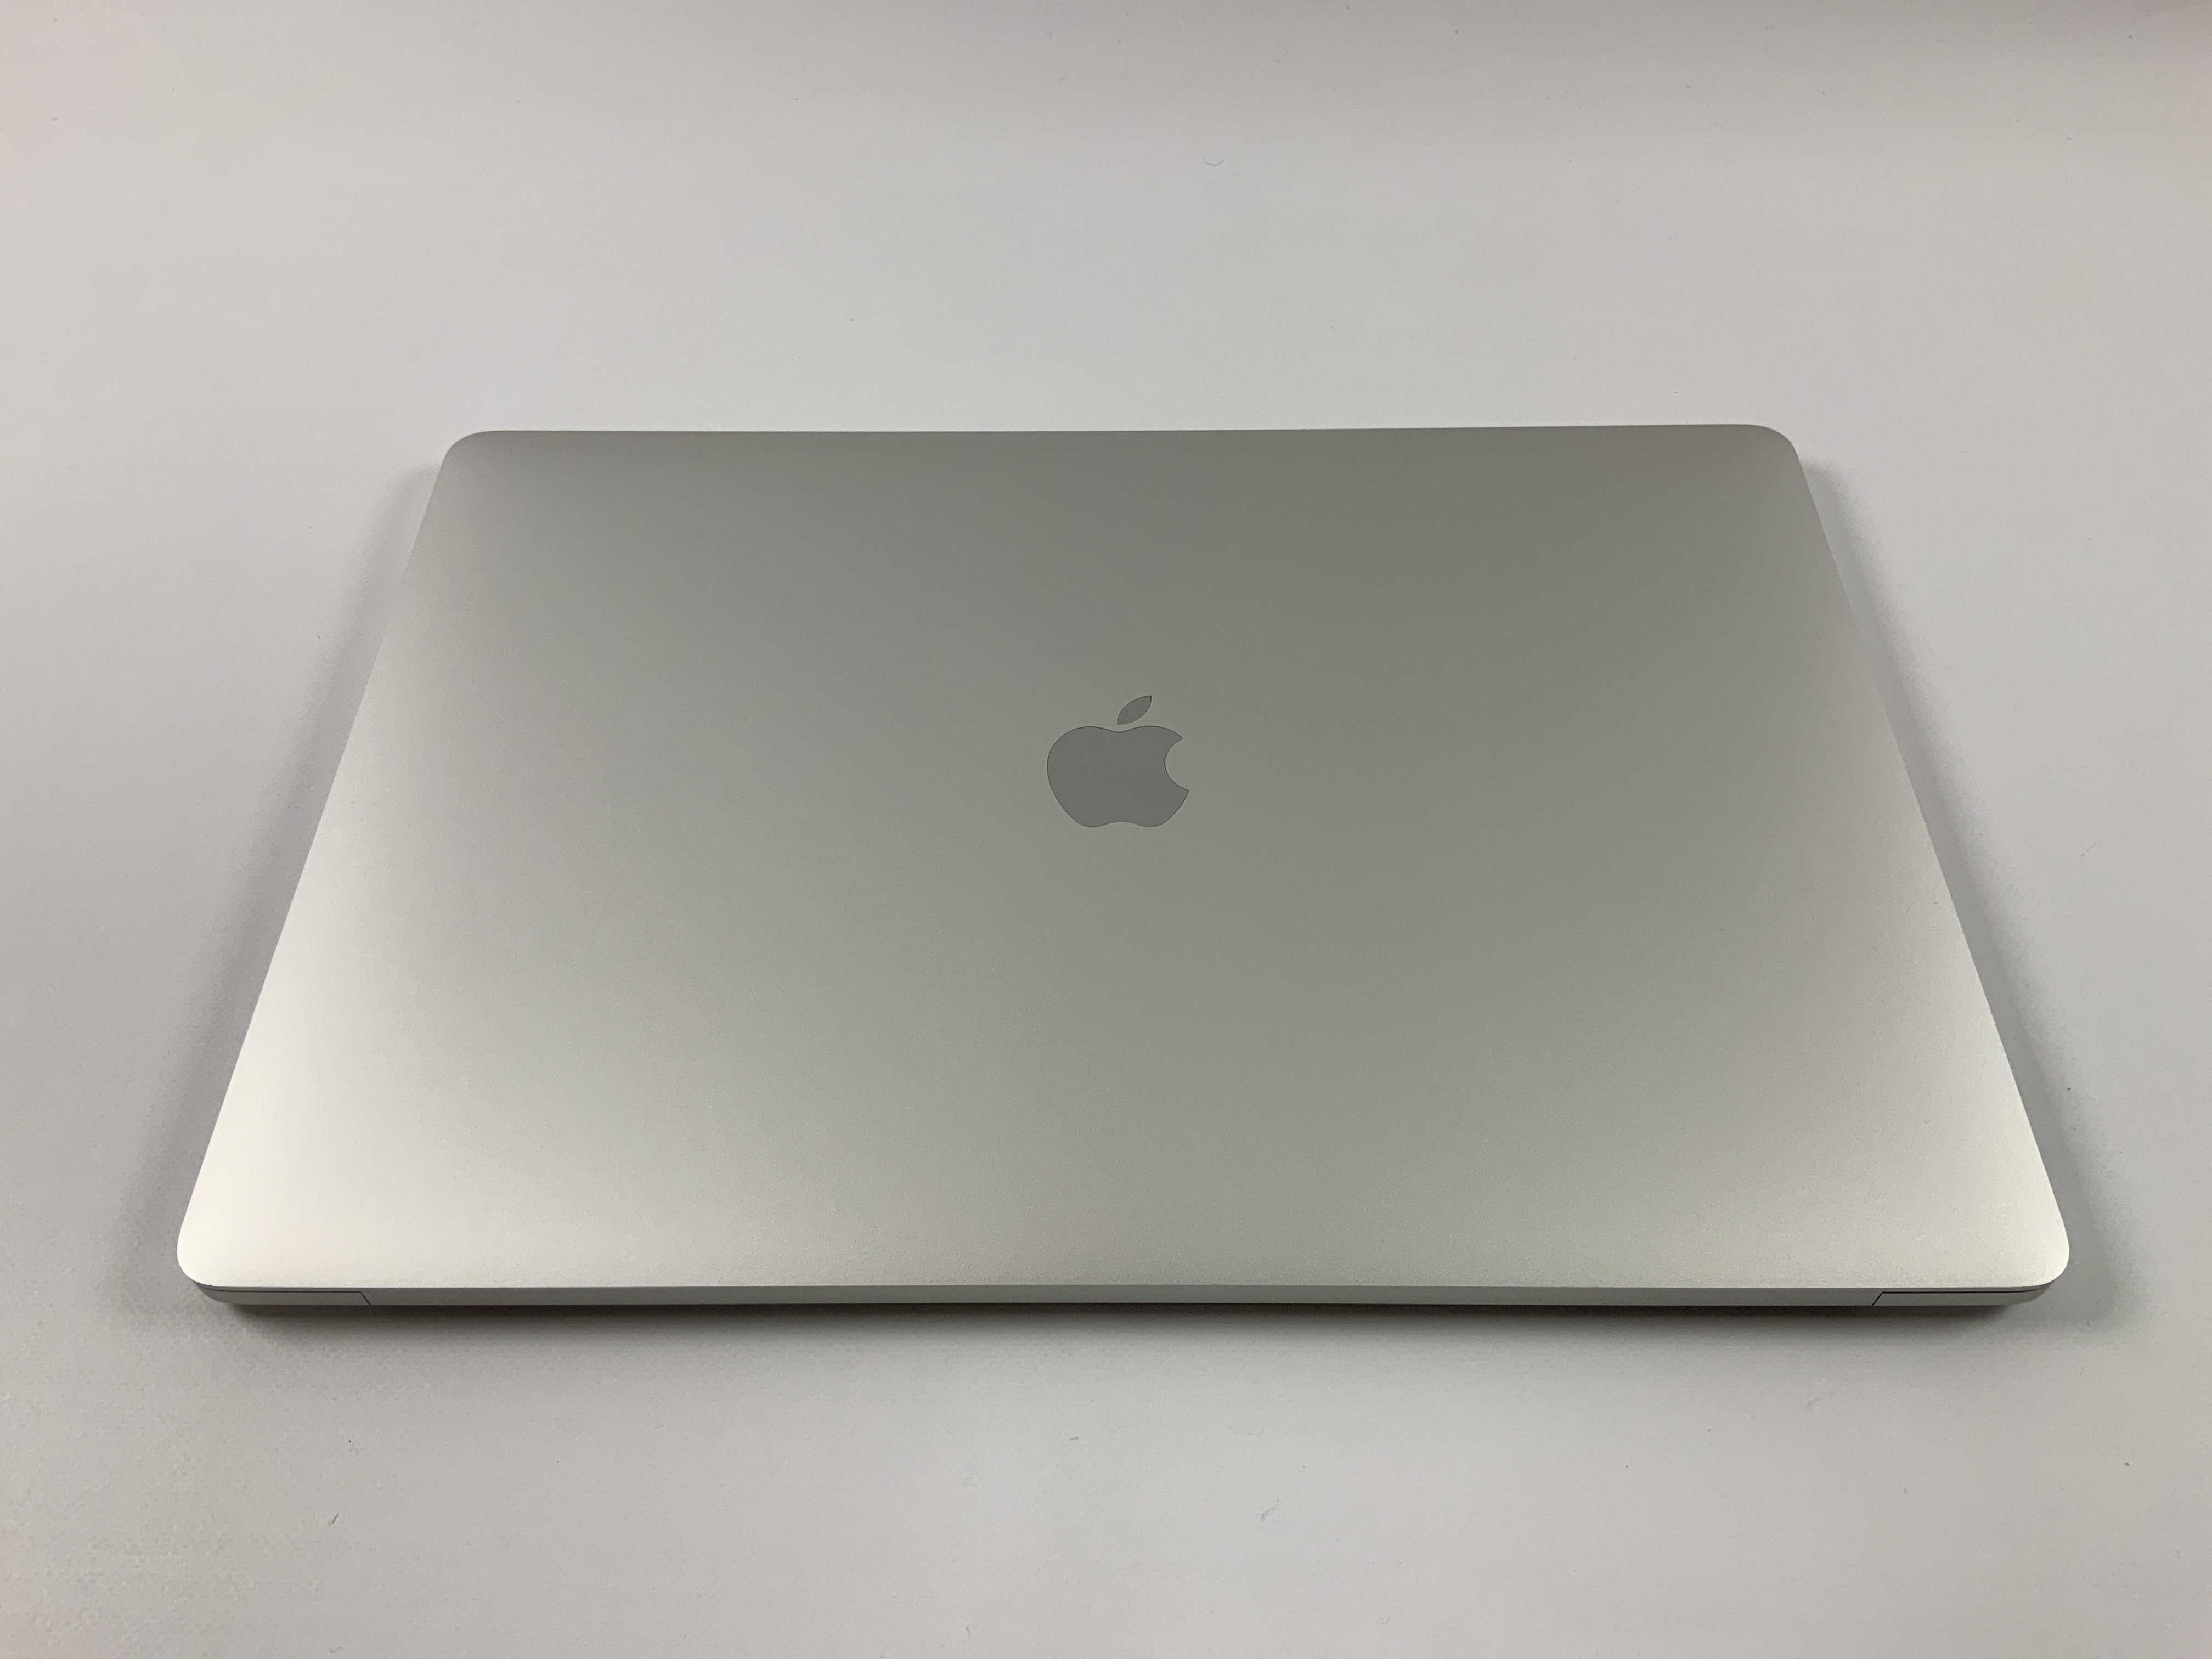 "MacBook Pro 15"" Touch Bar Mid 2017 (Intel Quad-Core i7 2.9 GHz 16 GB RAM 512 GB SSD), Silver, Intel Quad-Core i7 2.9 GHz, 16 GB RAM, 512 GB SSD, Afbeelding 2"